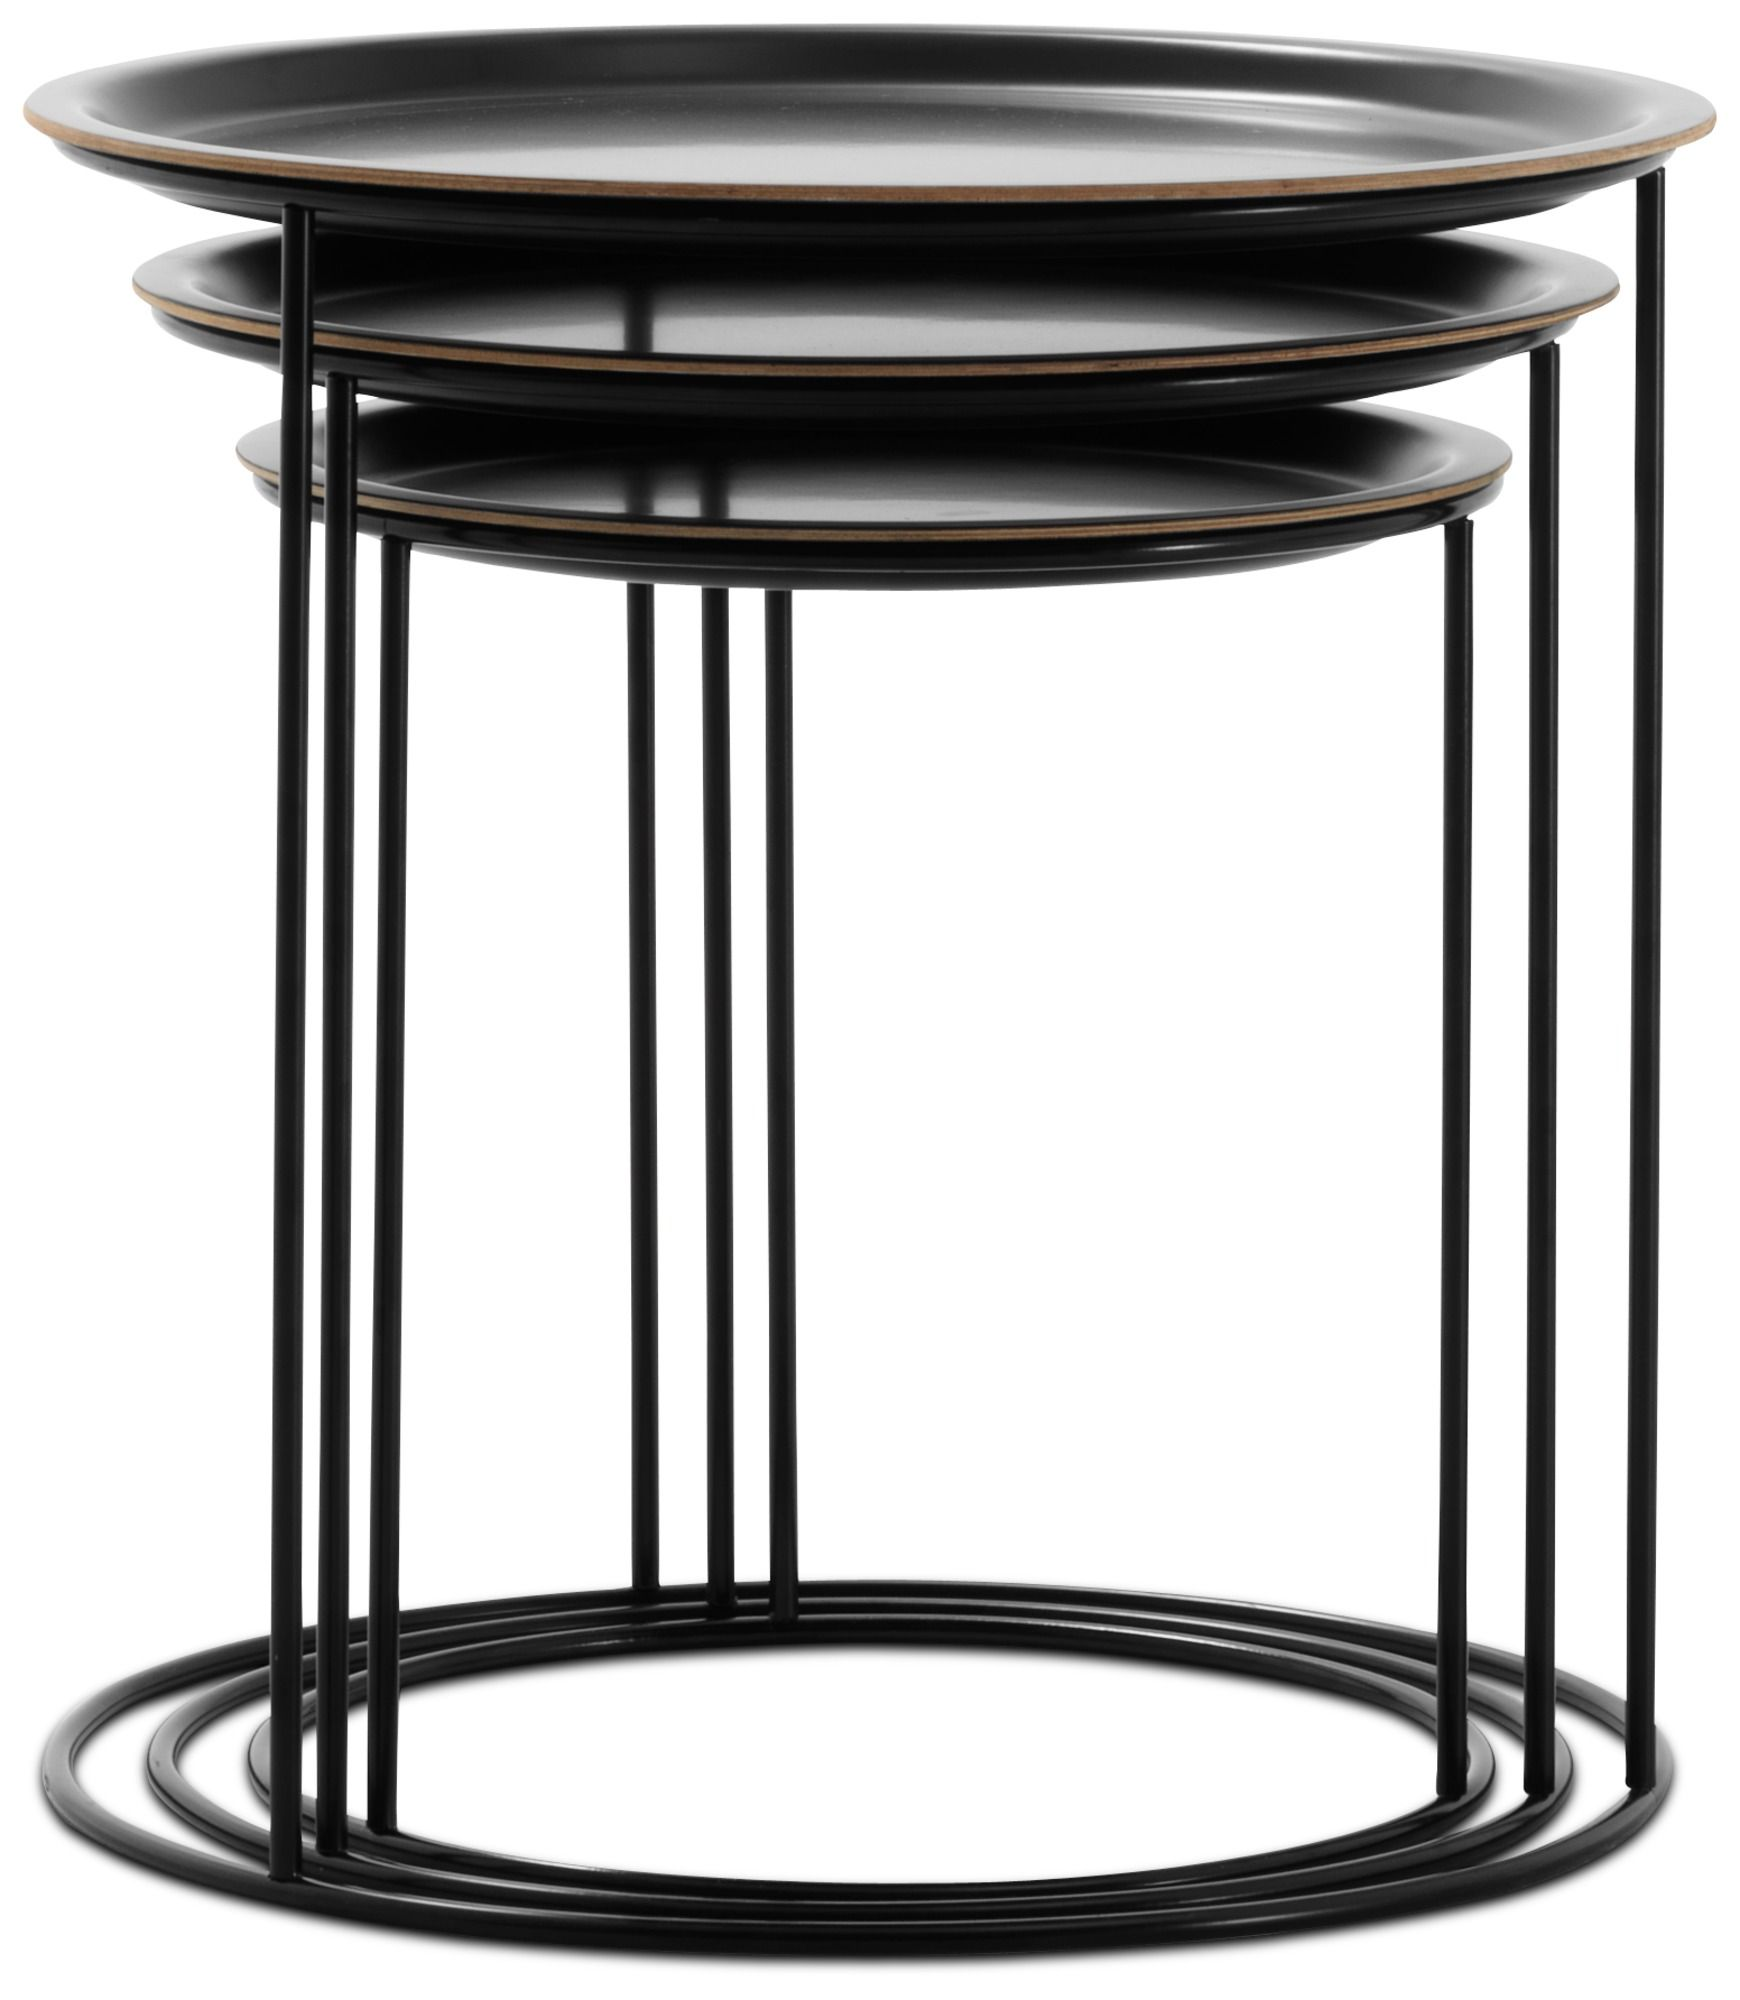 modern nesting tables boconcept pinterest boconcept tables and modern. Black Bedroom Furniture Sets. Home Design Ideas